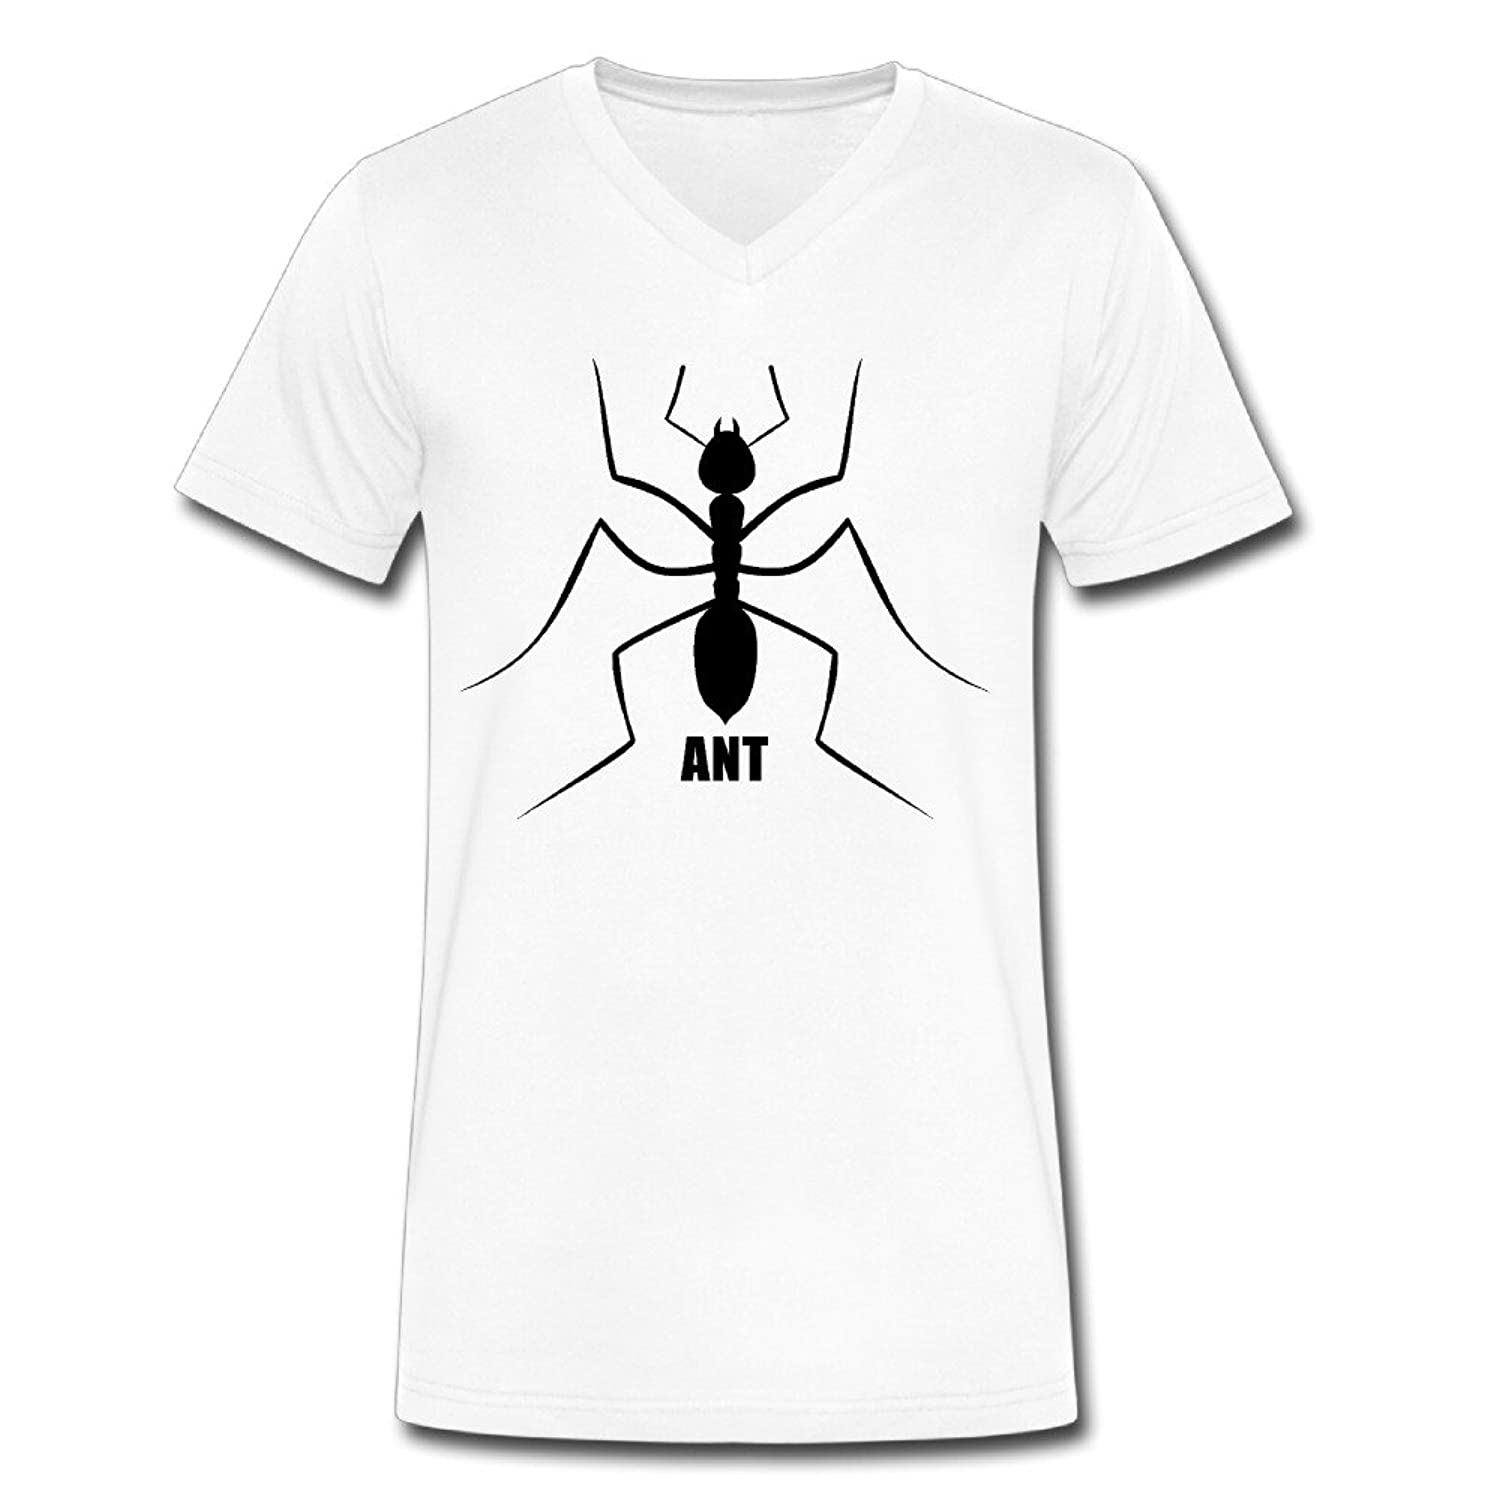 Ant Store218 Ant Normal fit Crew Neck Gentleman Shirts